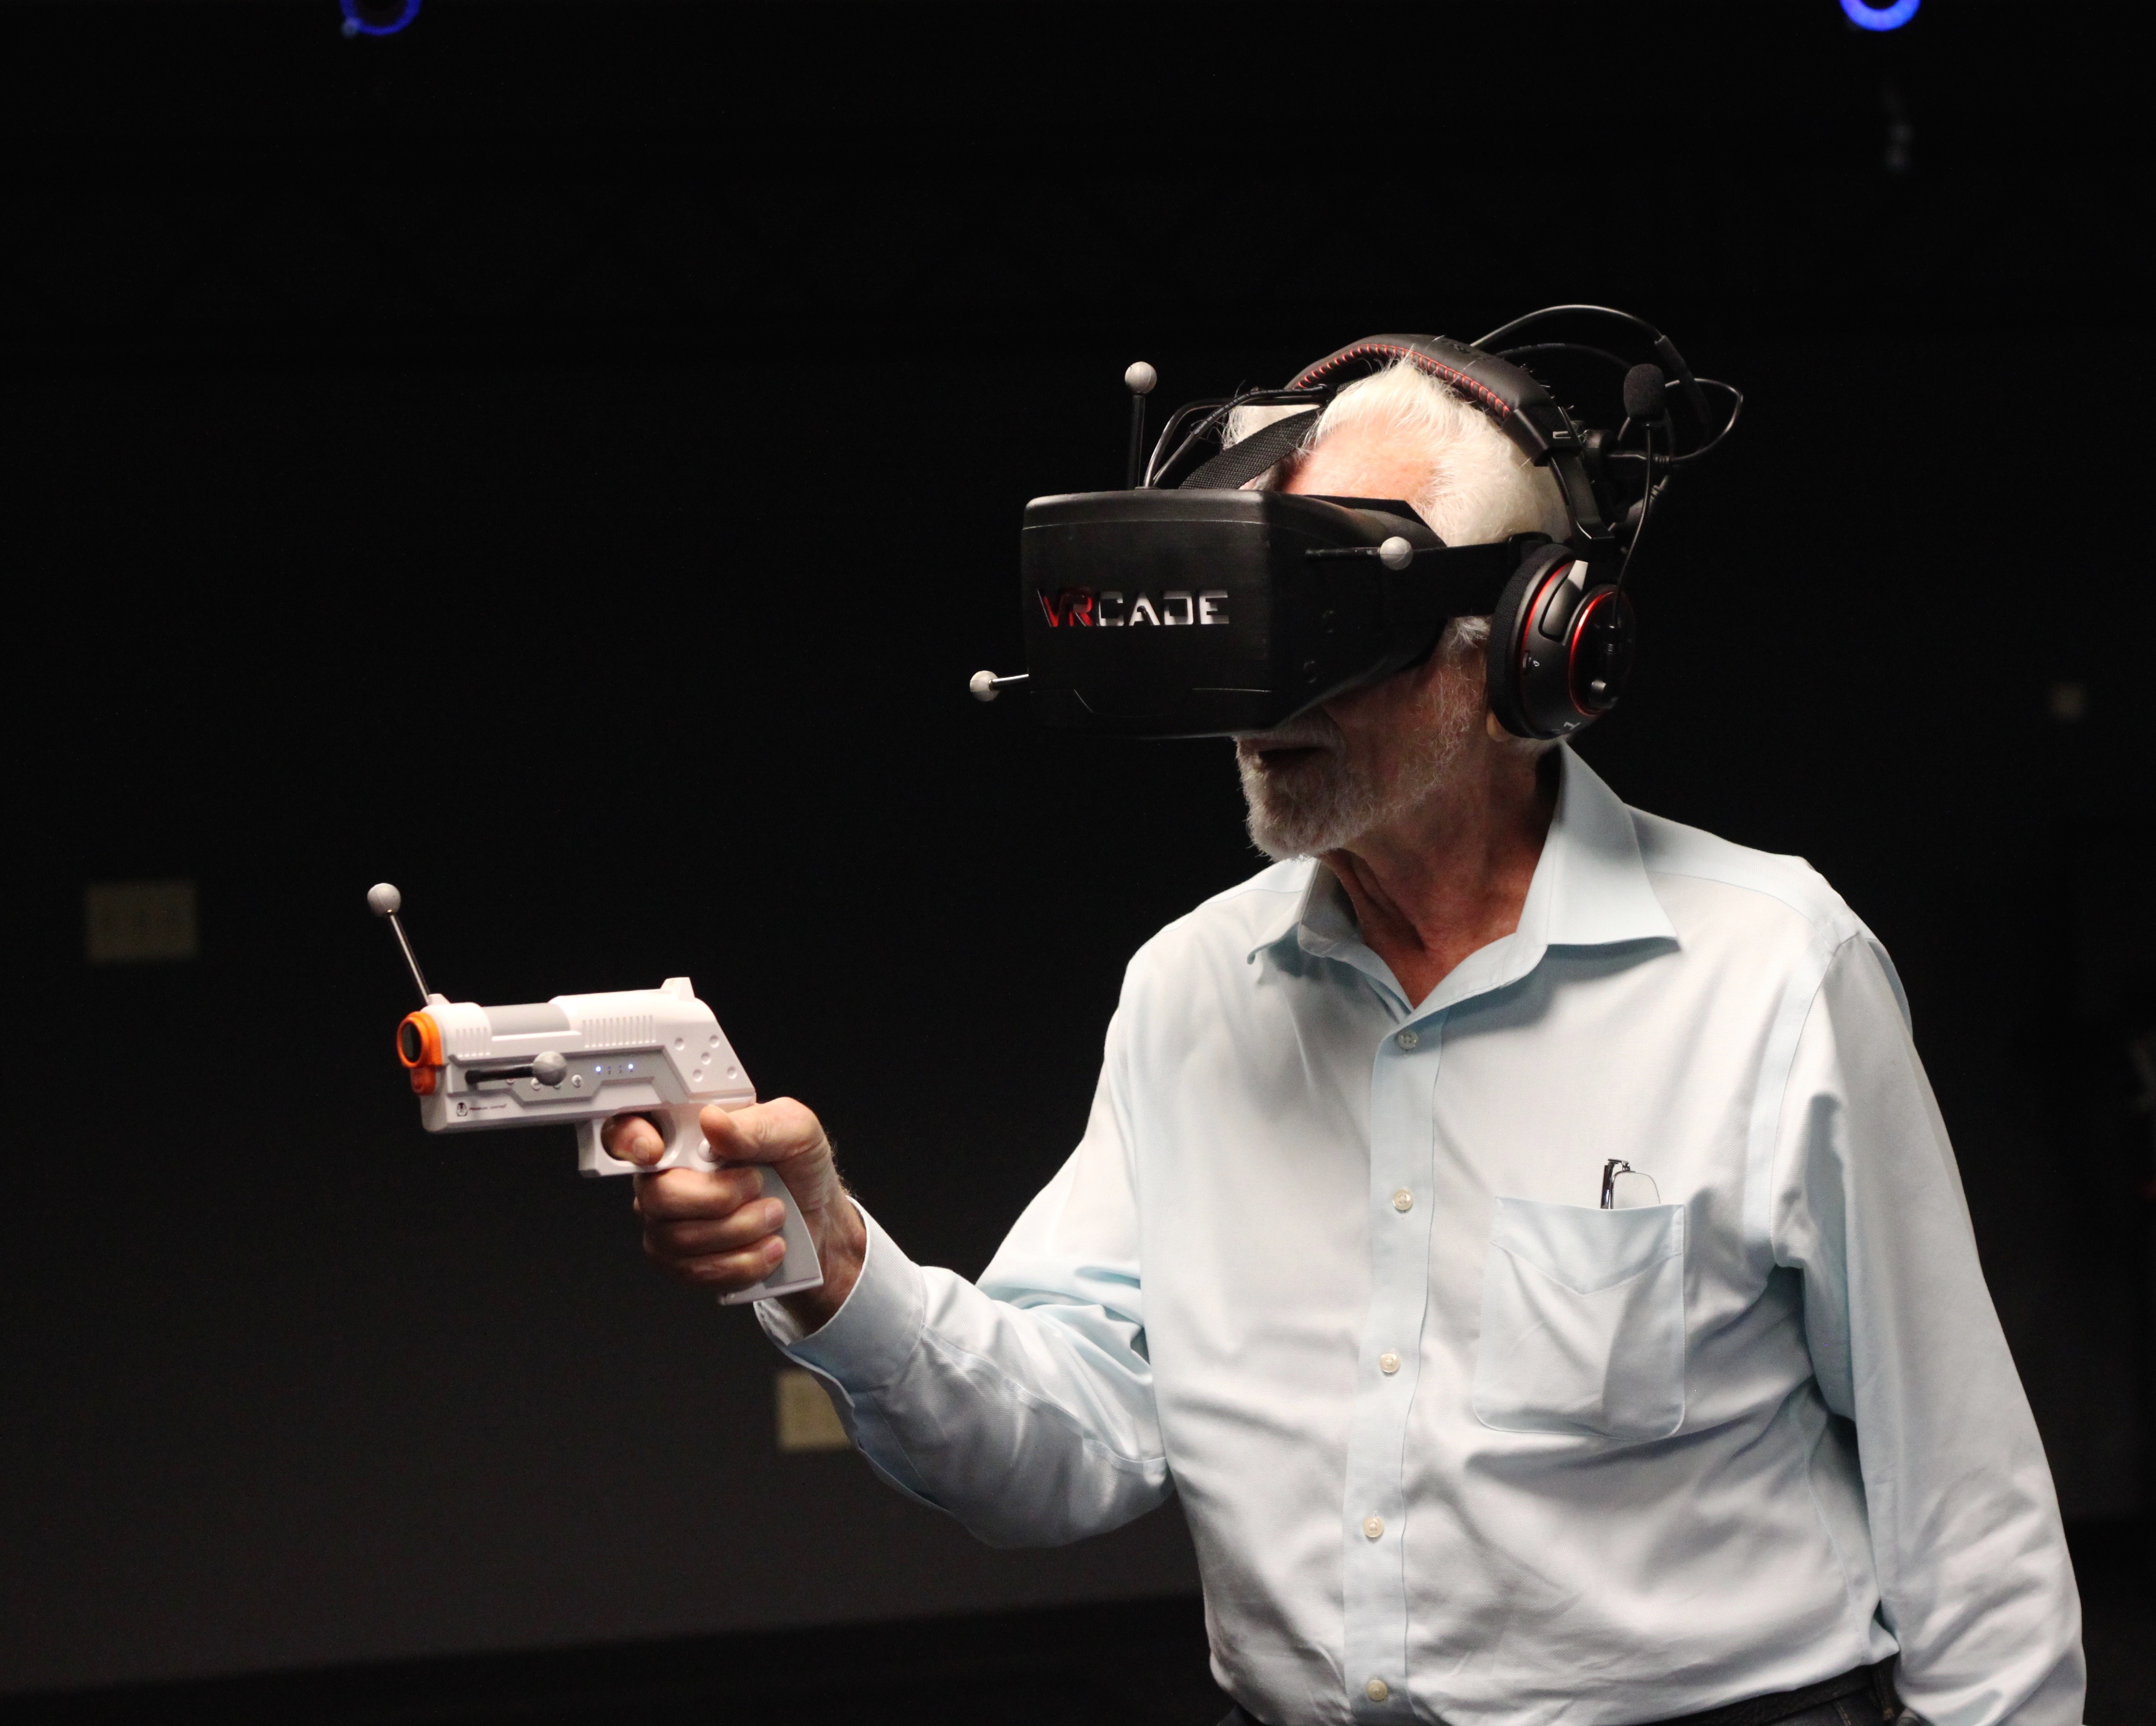 Cell phone inventor Marty Cooper tries out virtual reality at the age of 86.